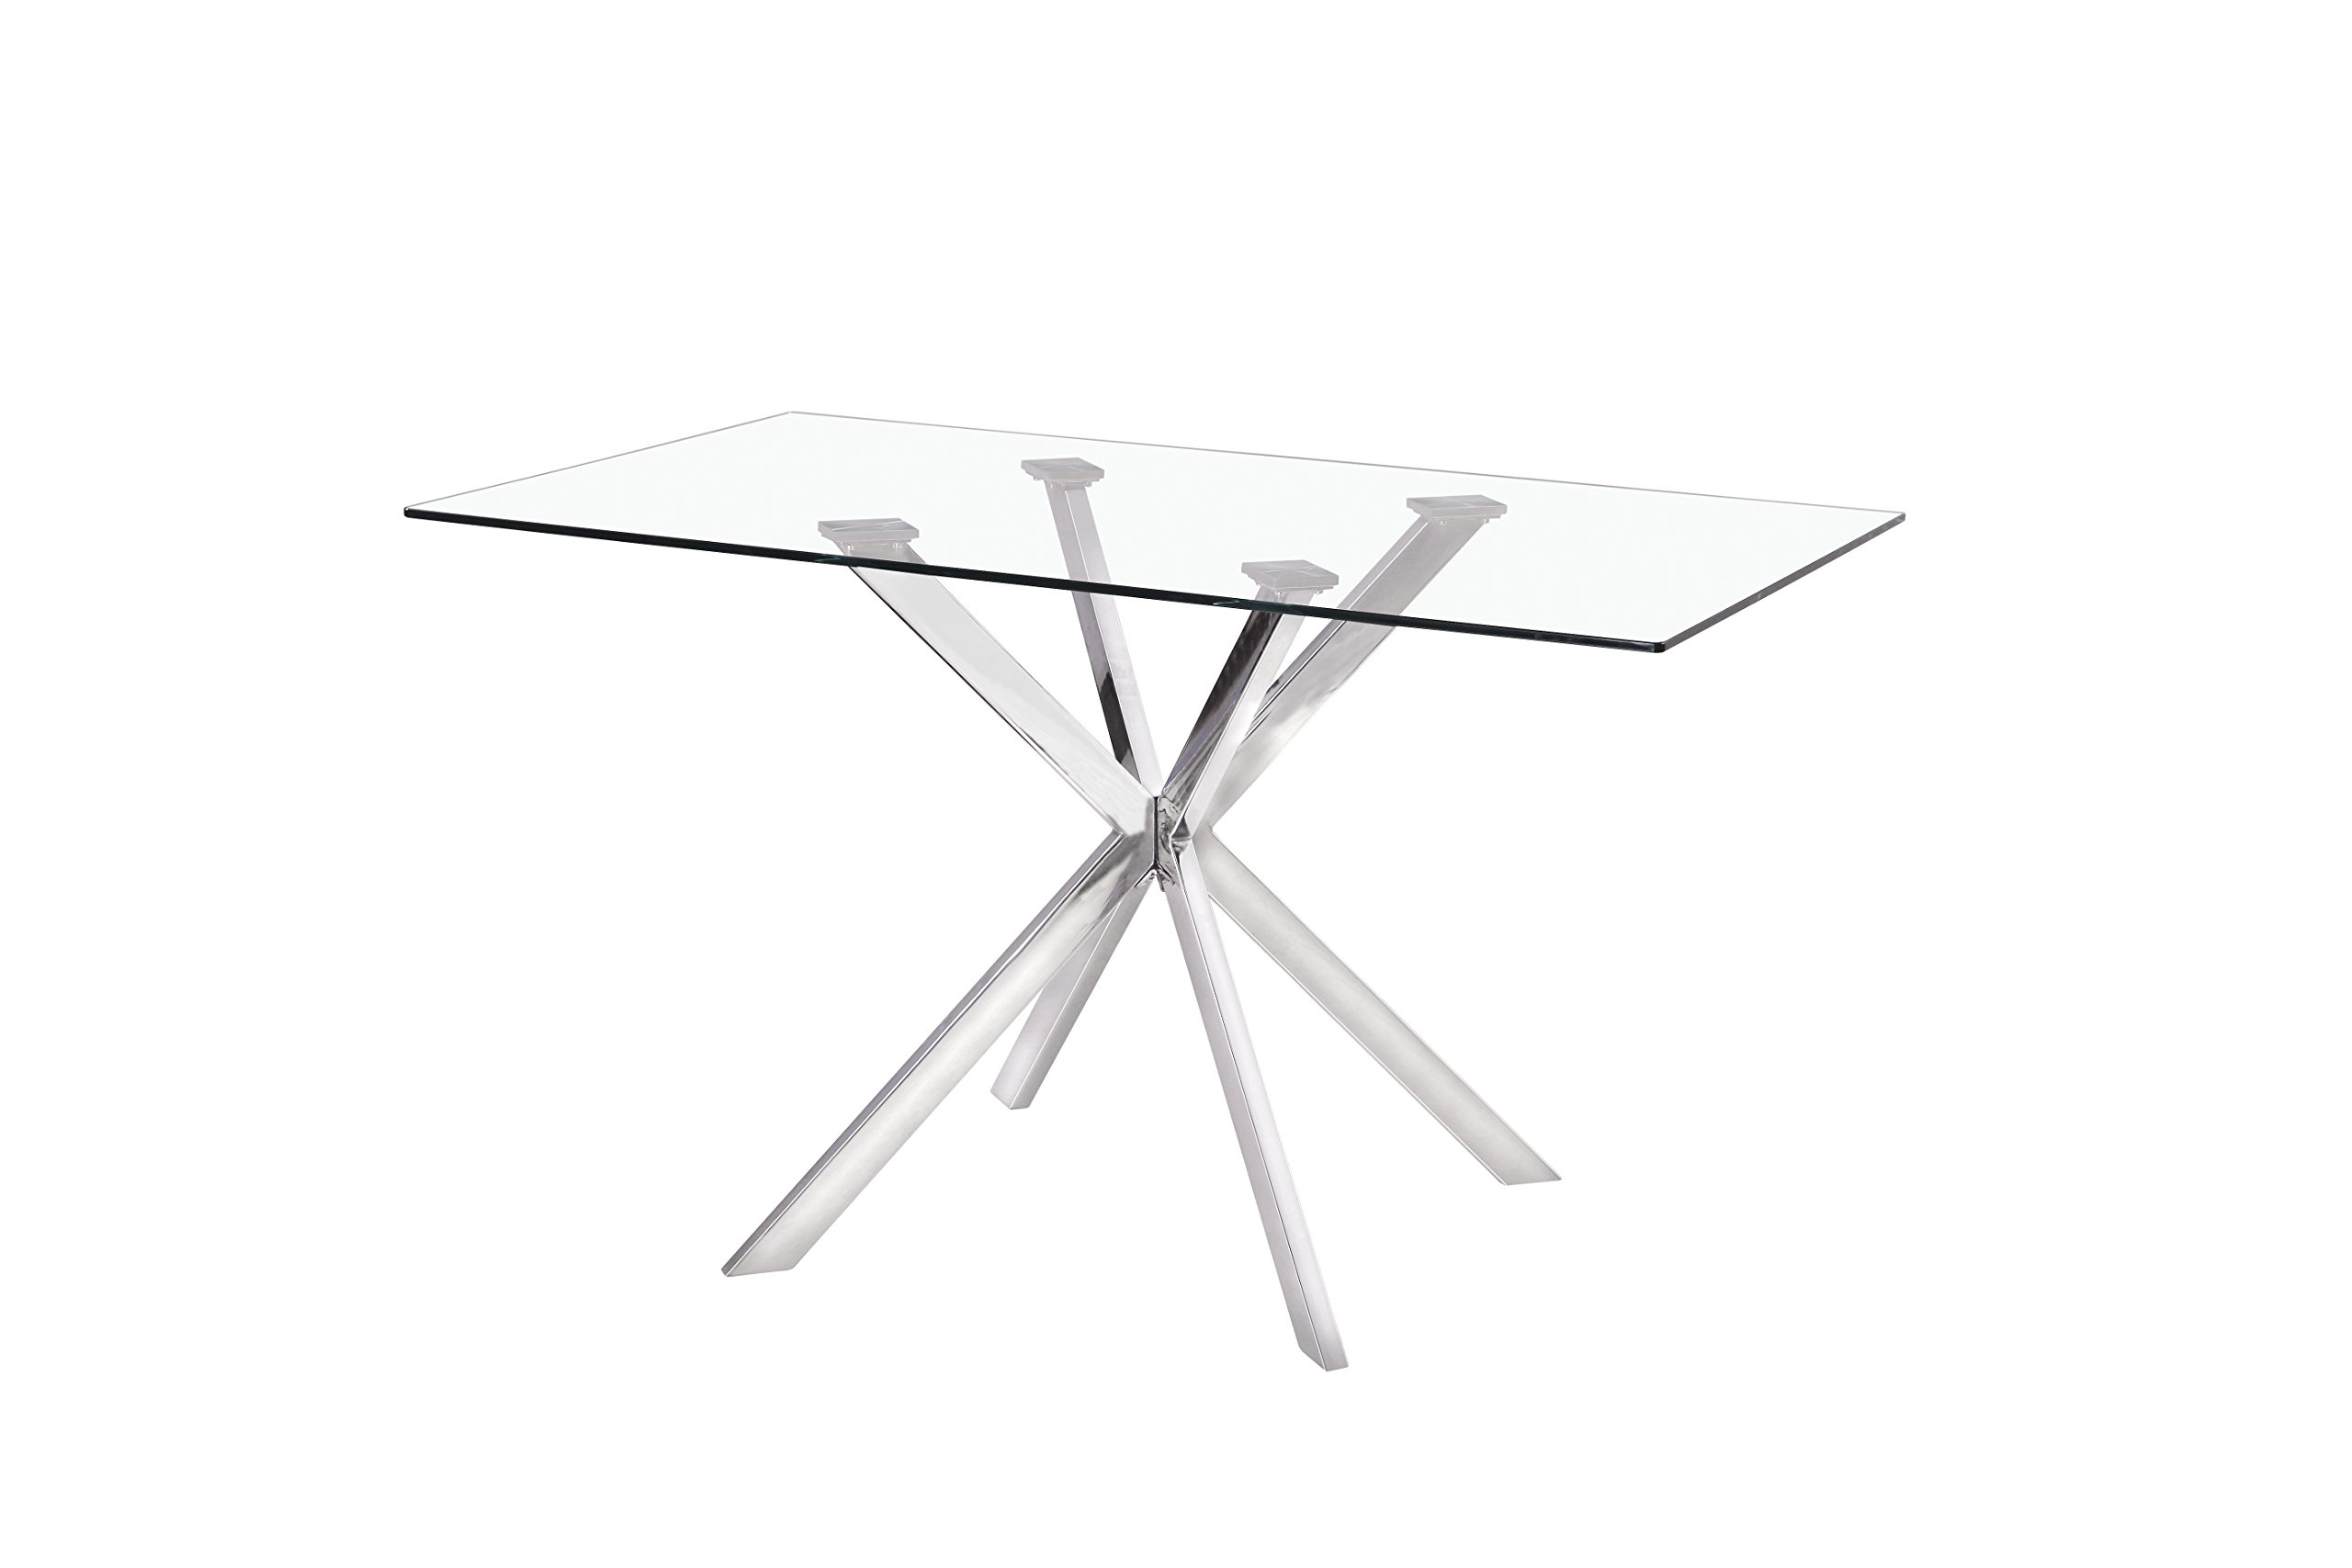 Uptown Club Linus Collection Rectangle Modern Exquisite Chrome Frame Glass Top Dining room Table, 51.2'' L x 31.5'' W x 29.5'' H, Silver by Uptown Club